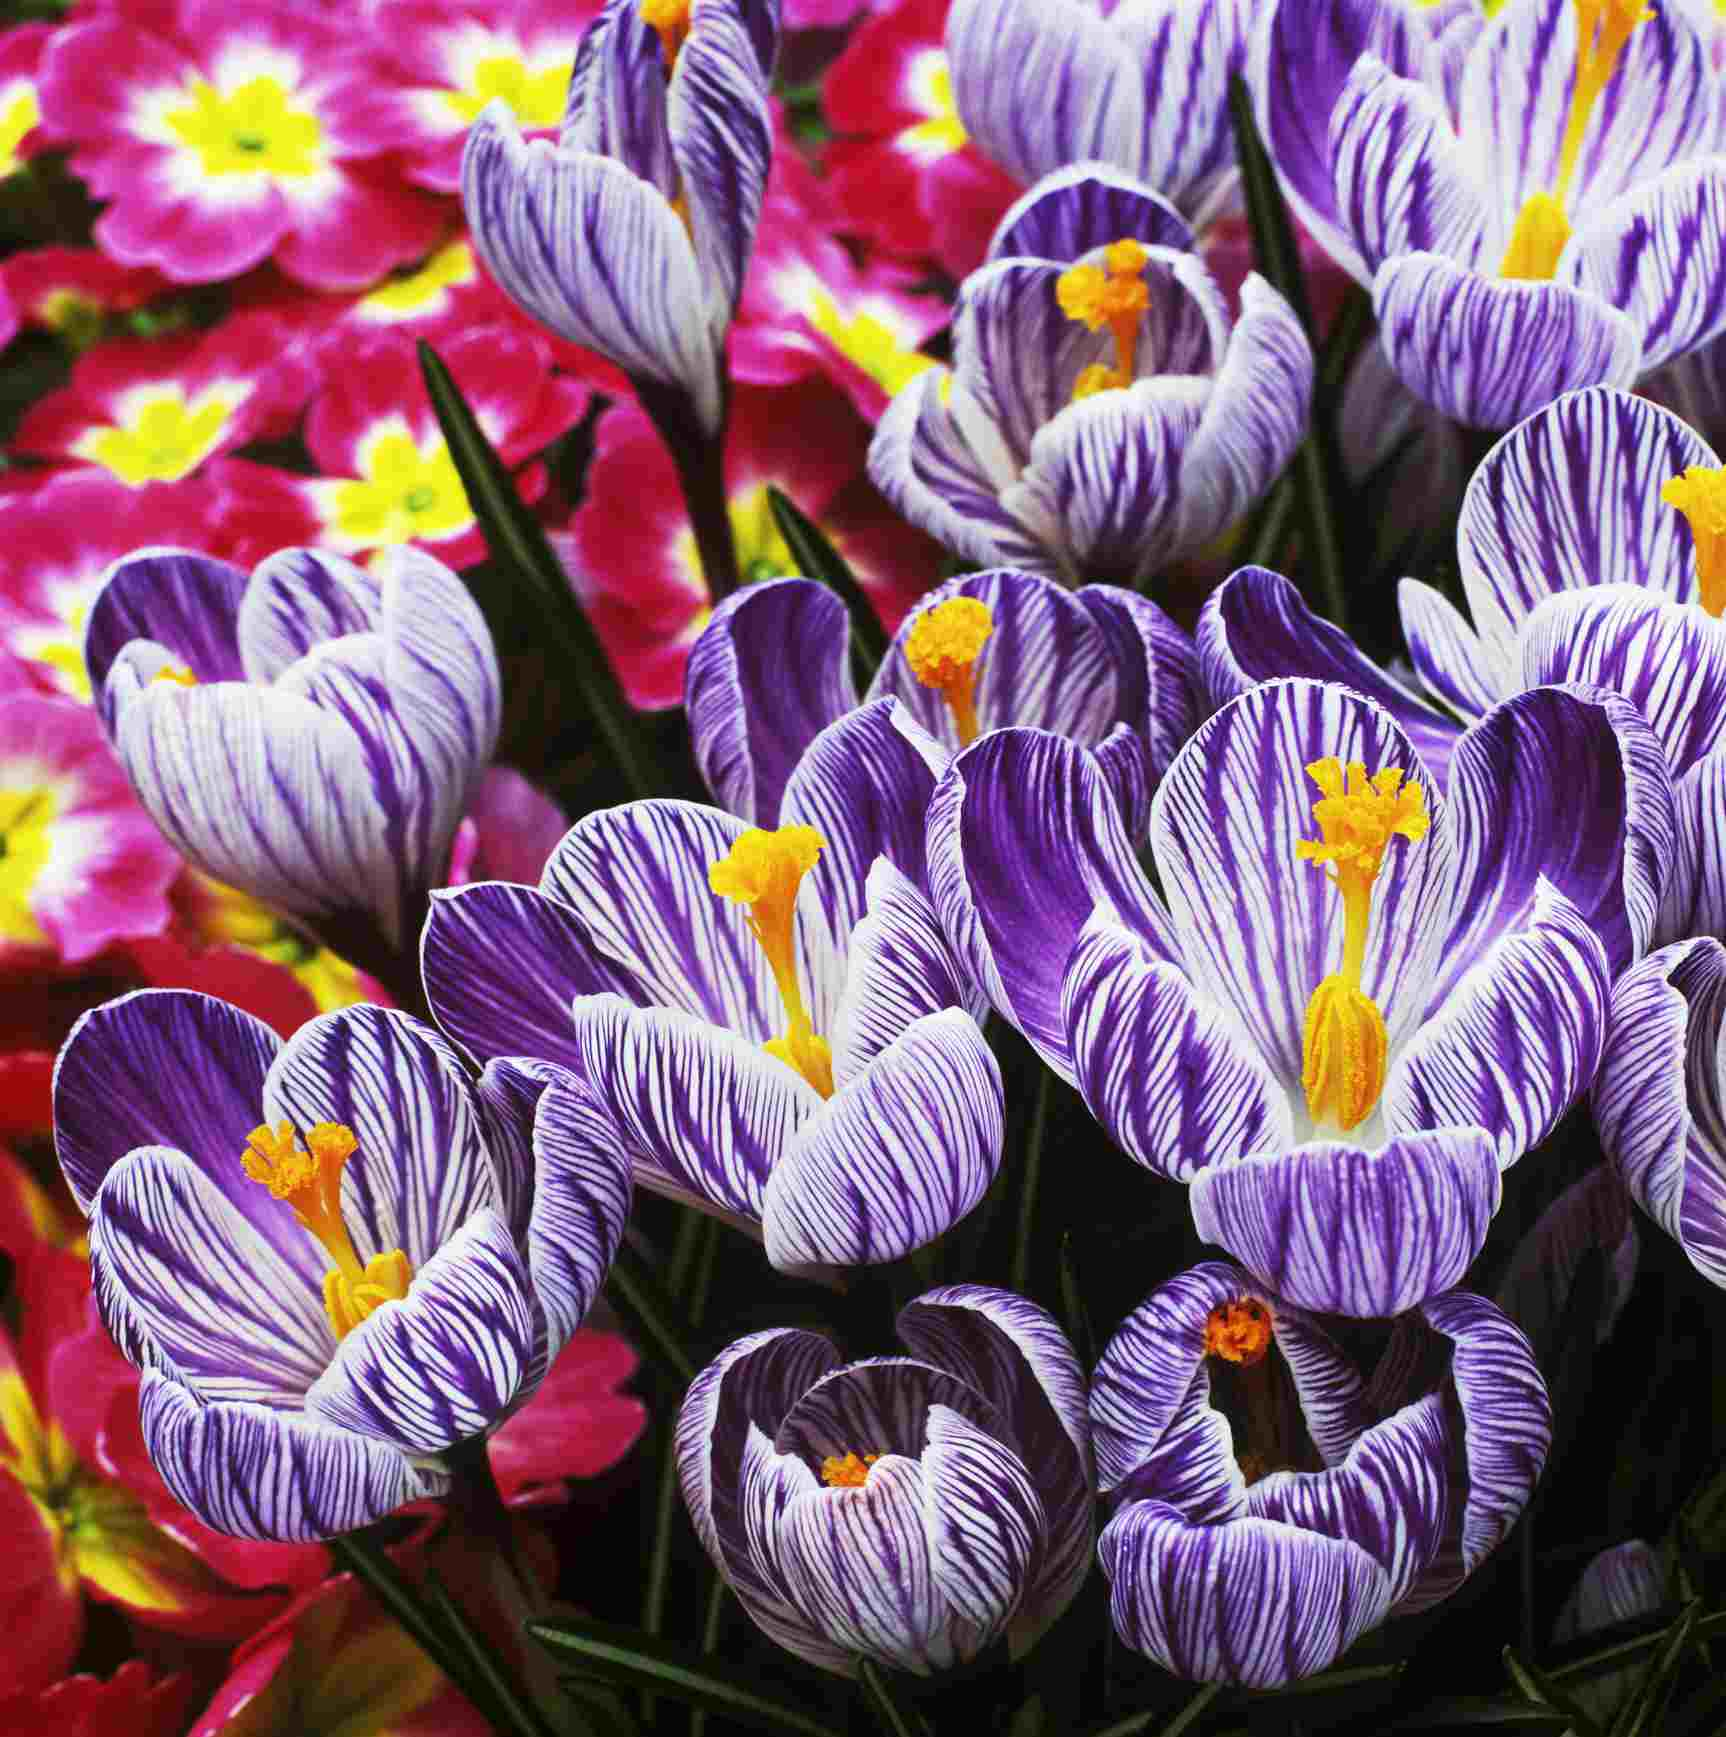 'Pickwick' crocus with purple and white petals